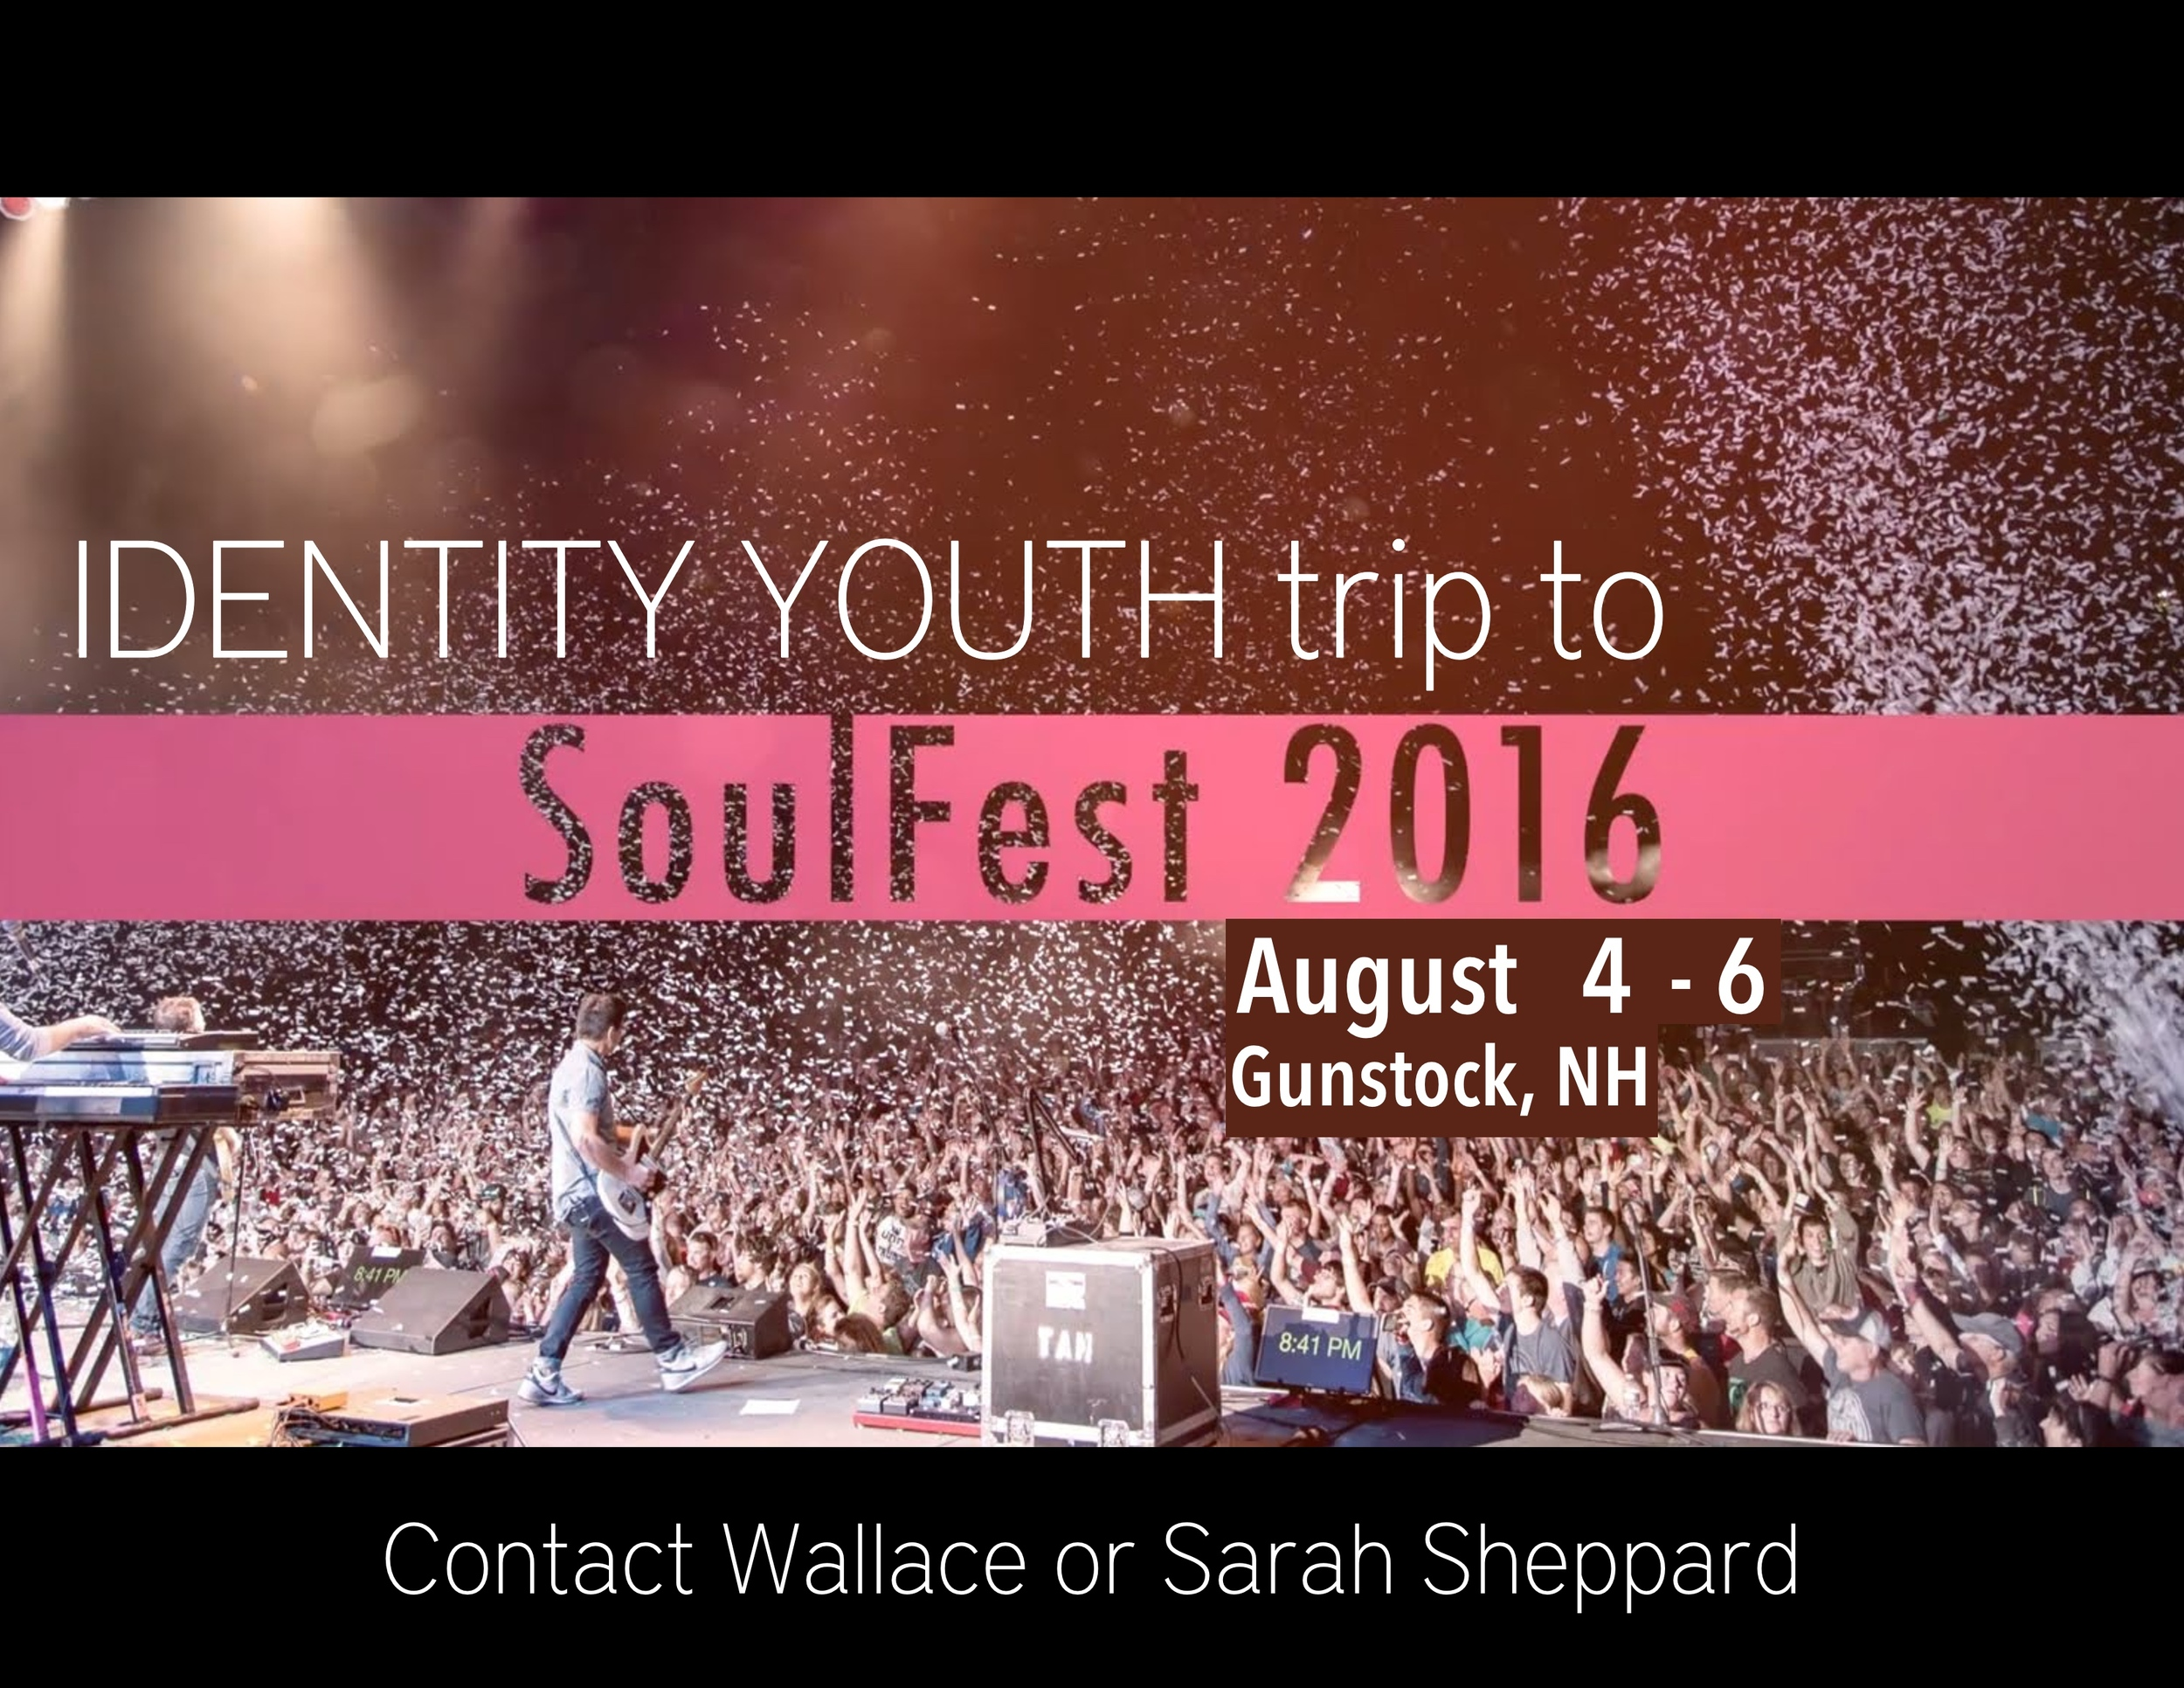 Identity Youth is planning a trip to New England's biggest outdoor Christian music festival this August 4th-6th in Gunstock, NH!Please contact Wallace or Sarah Sheppard for more info.You can shoot an email to wallace_c_sheppard@yahoo.com.